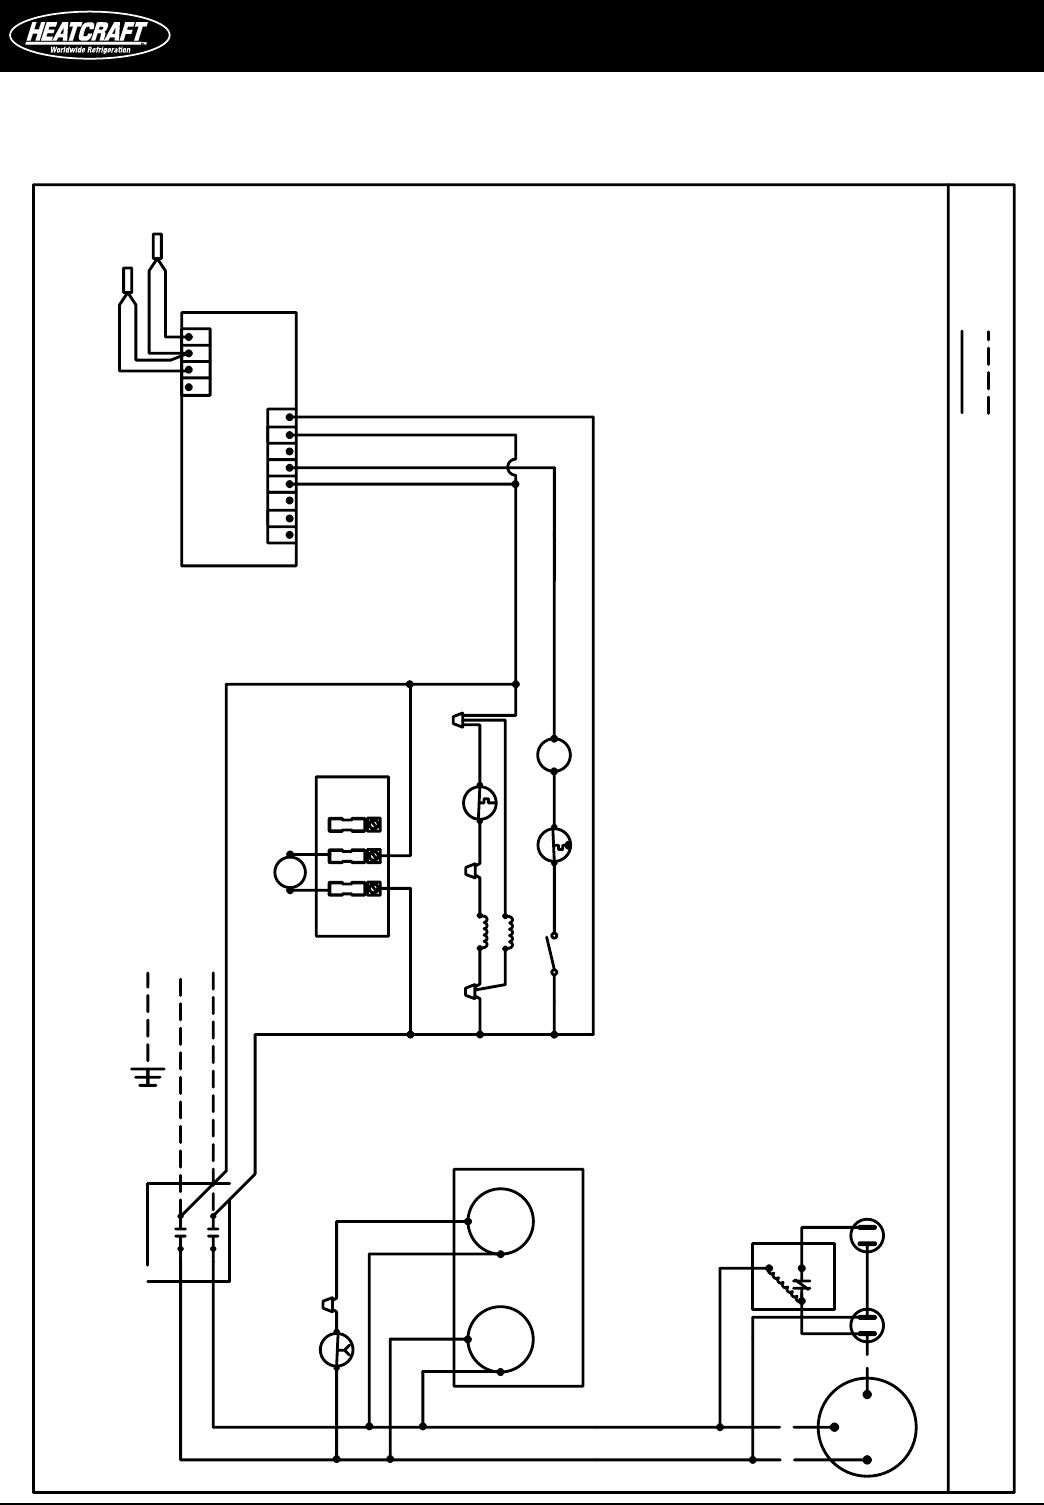 Heater 120v Wiring Diagram Free Download Wiring Diagram Schematic